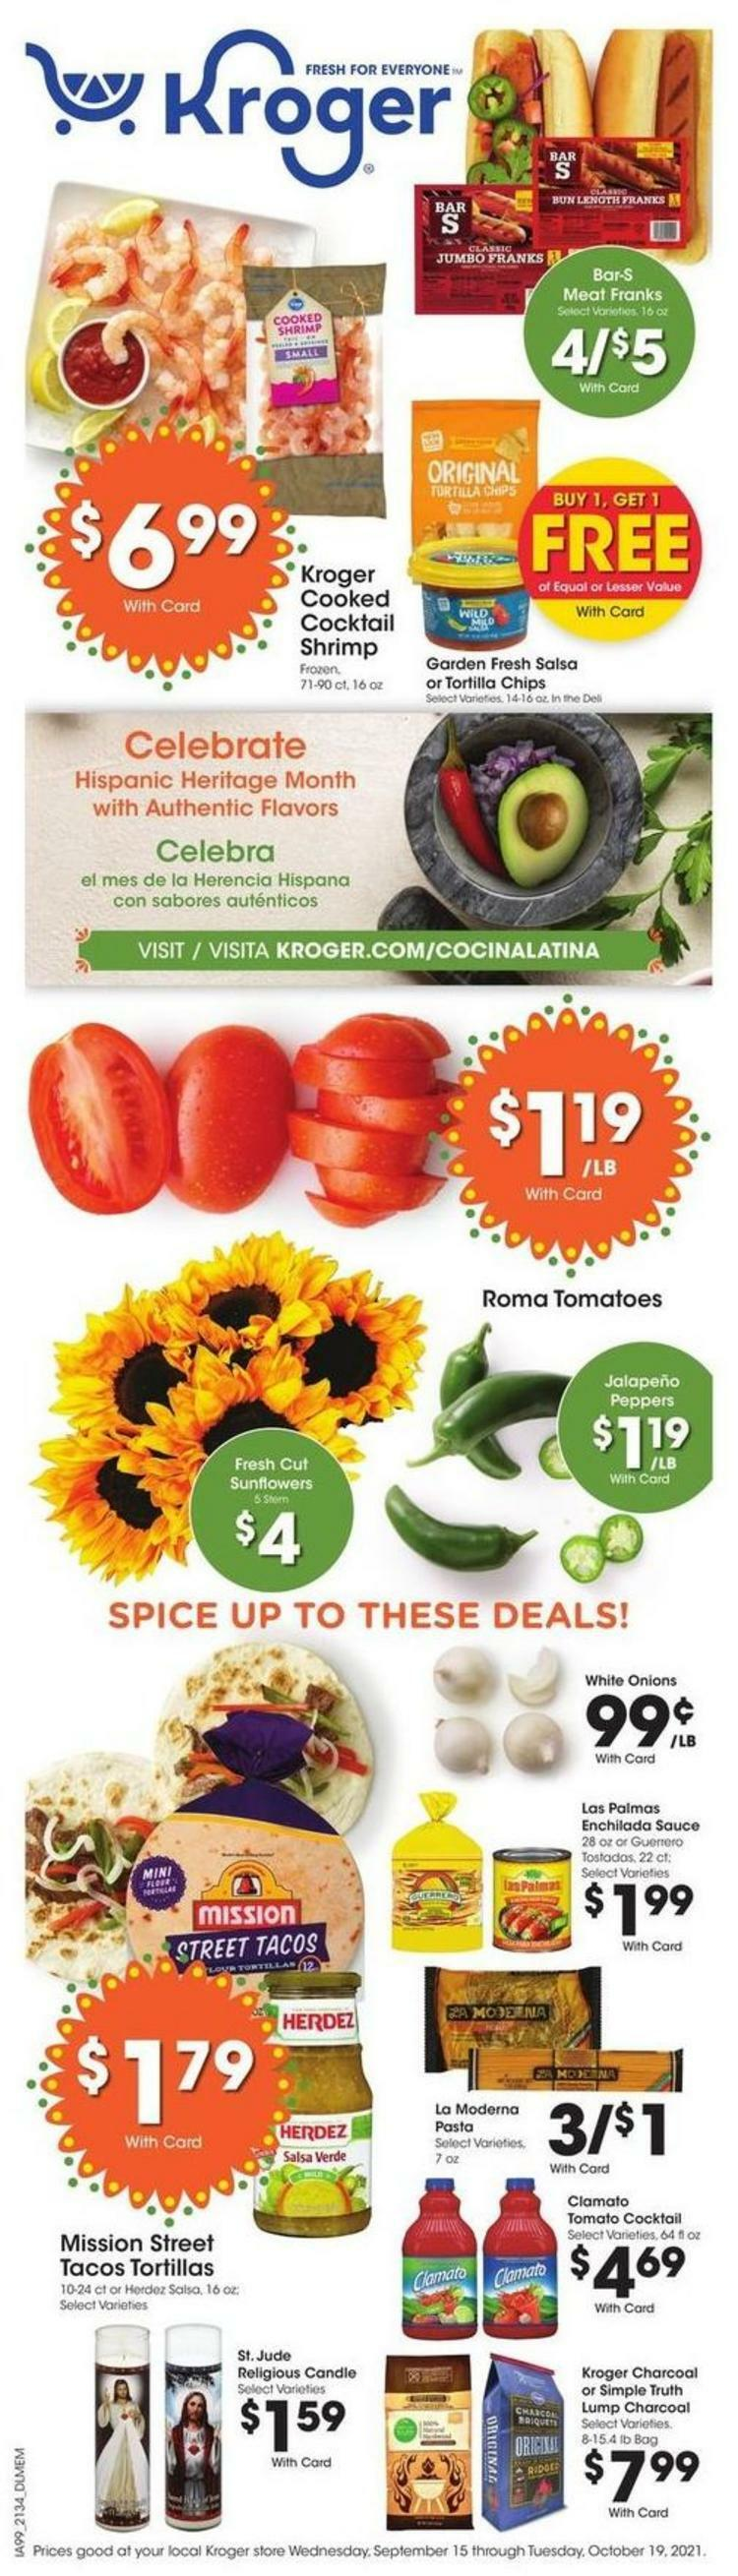 Kroger Weekly Ad from September 22